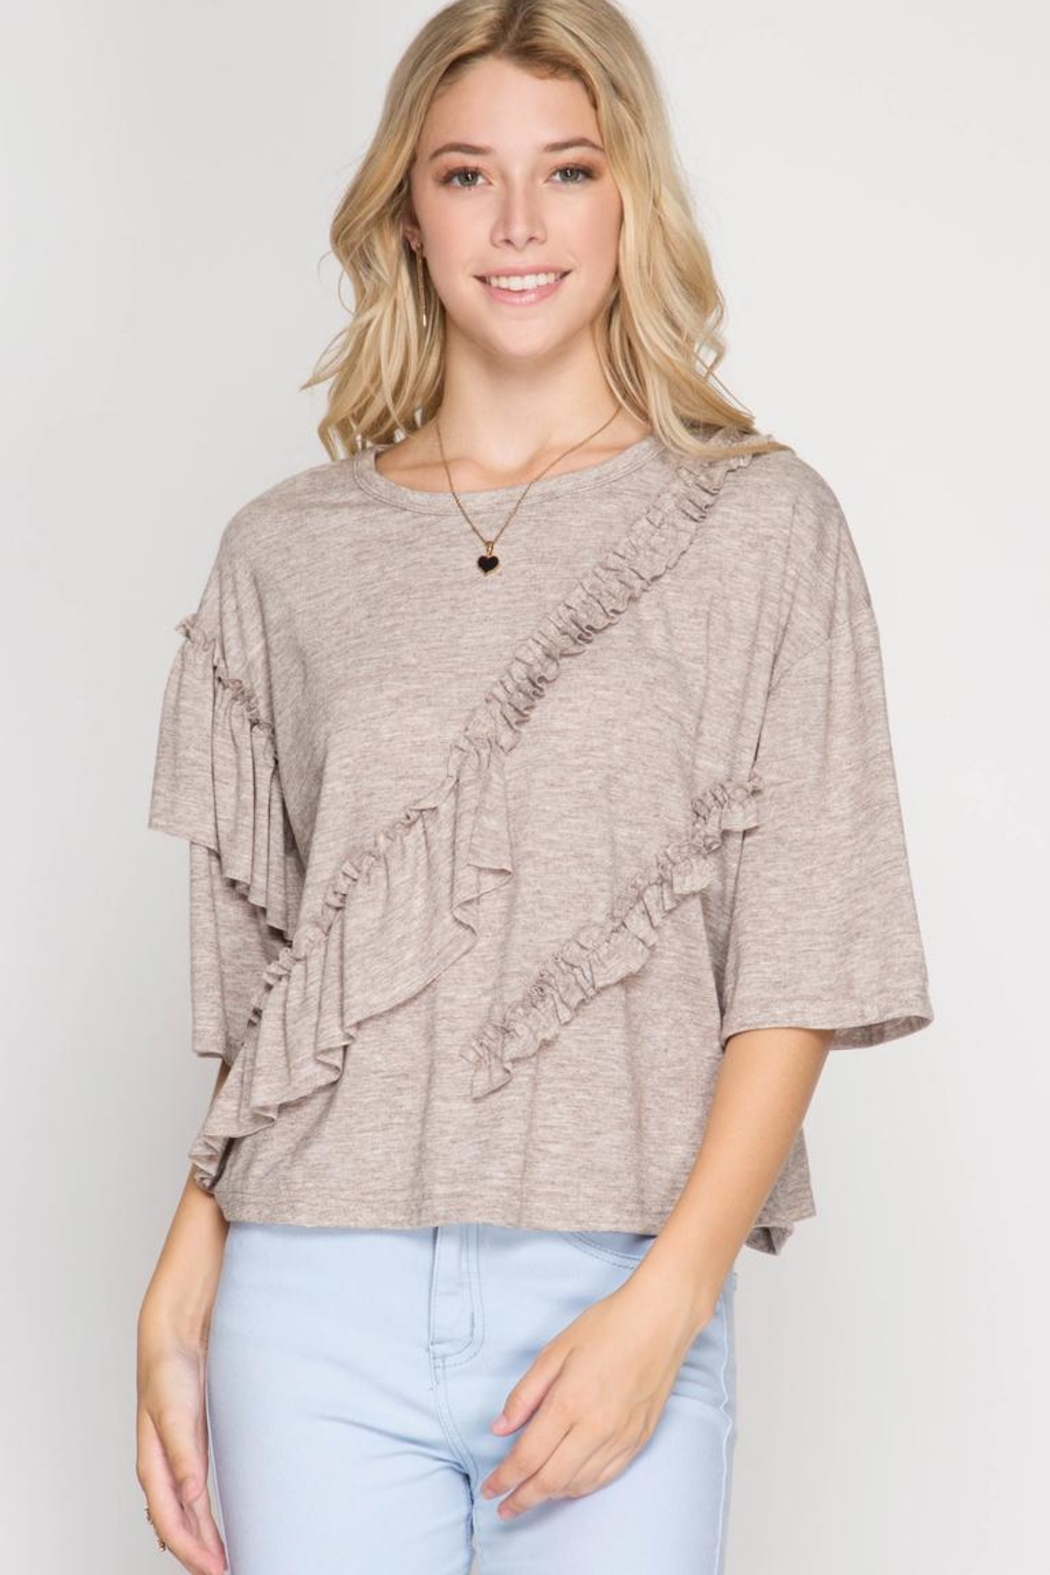 She + Sky Multi Ruffle Top - Front Cropped Image